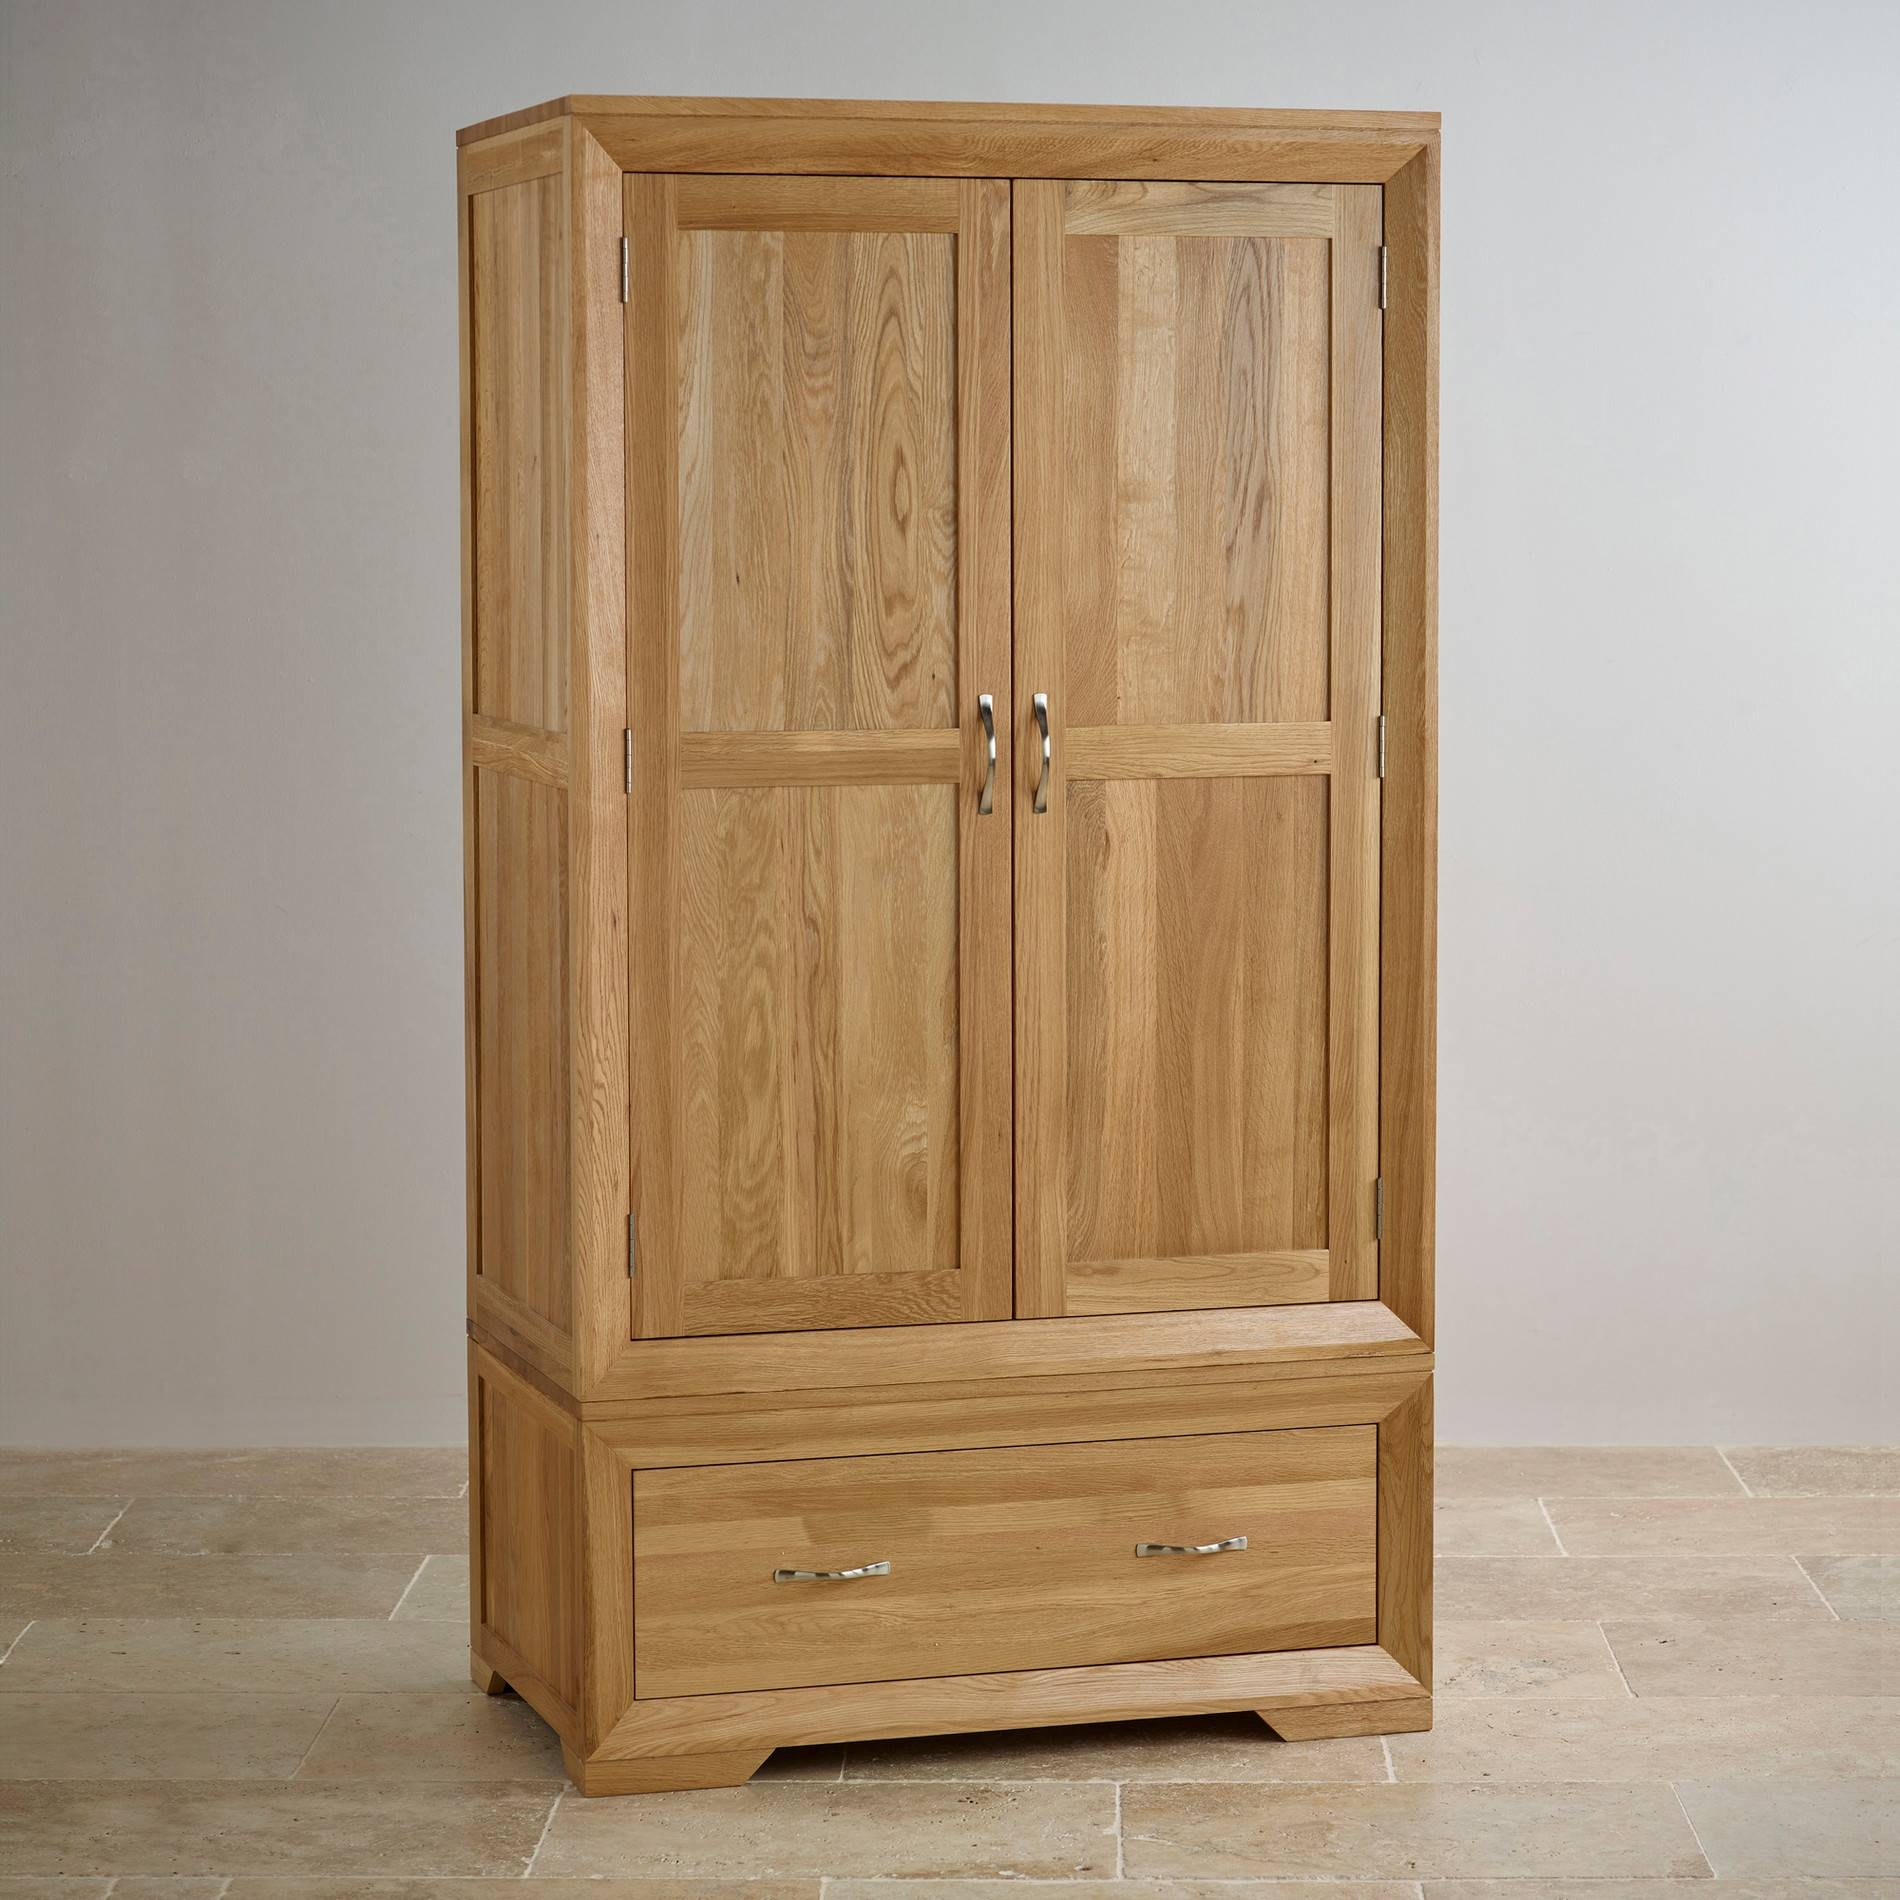 Bevel Natural Solid Oak Wardrobe | Bedroom Furniture within Oak Wardrobes (Image 2 of 15)